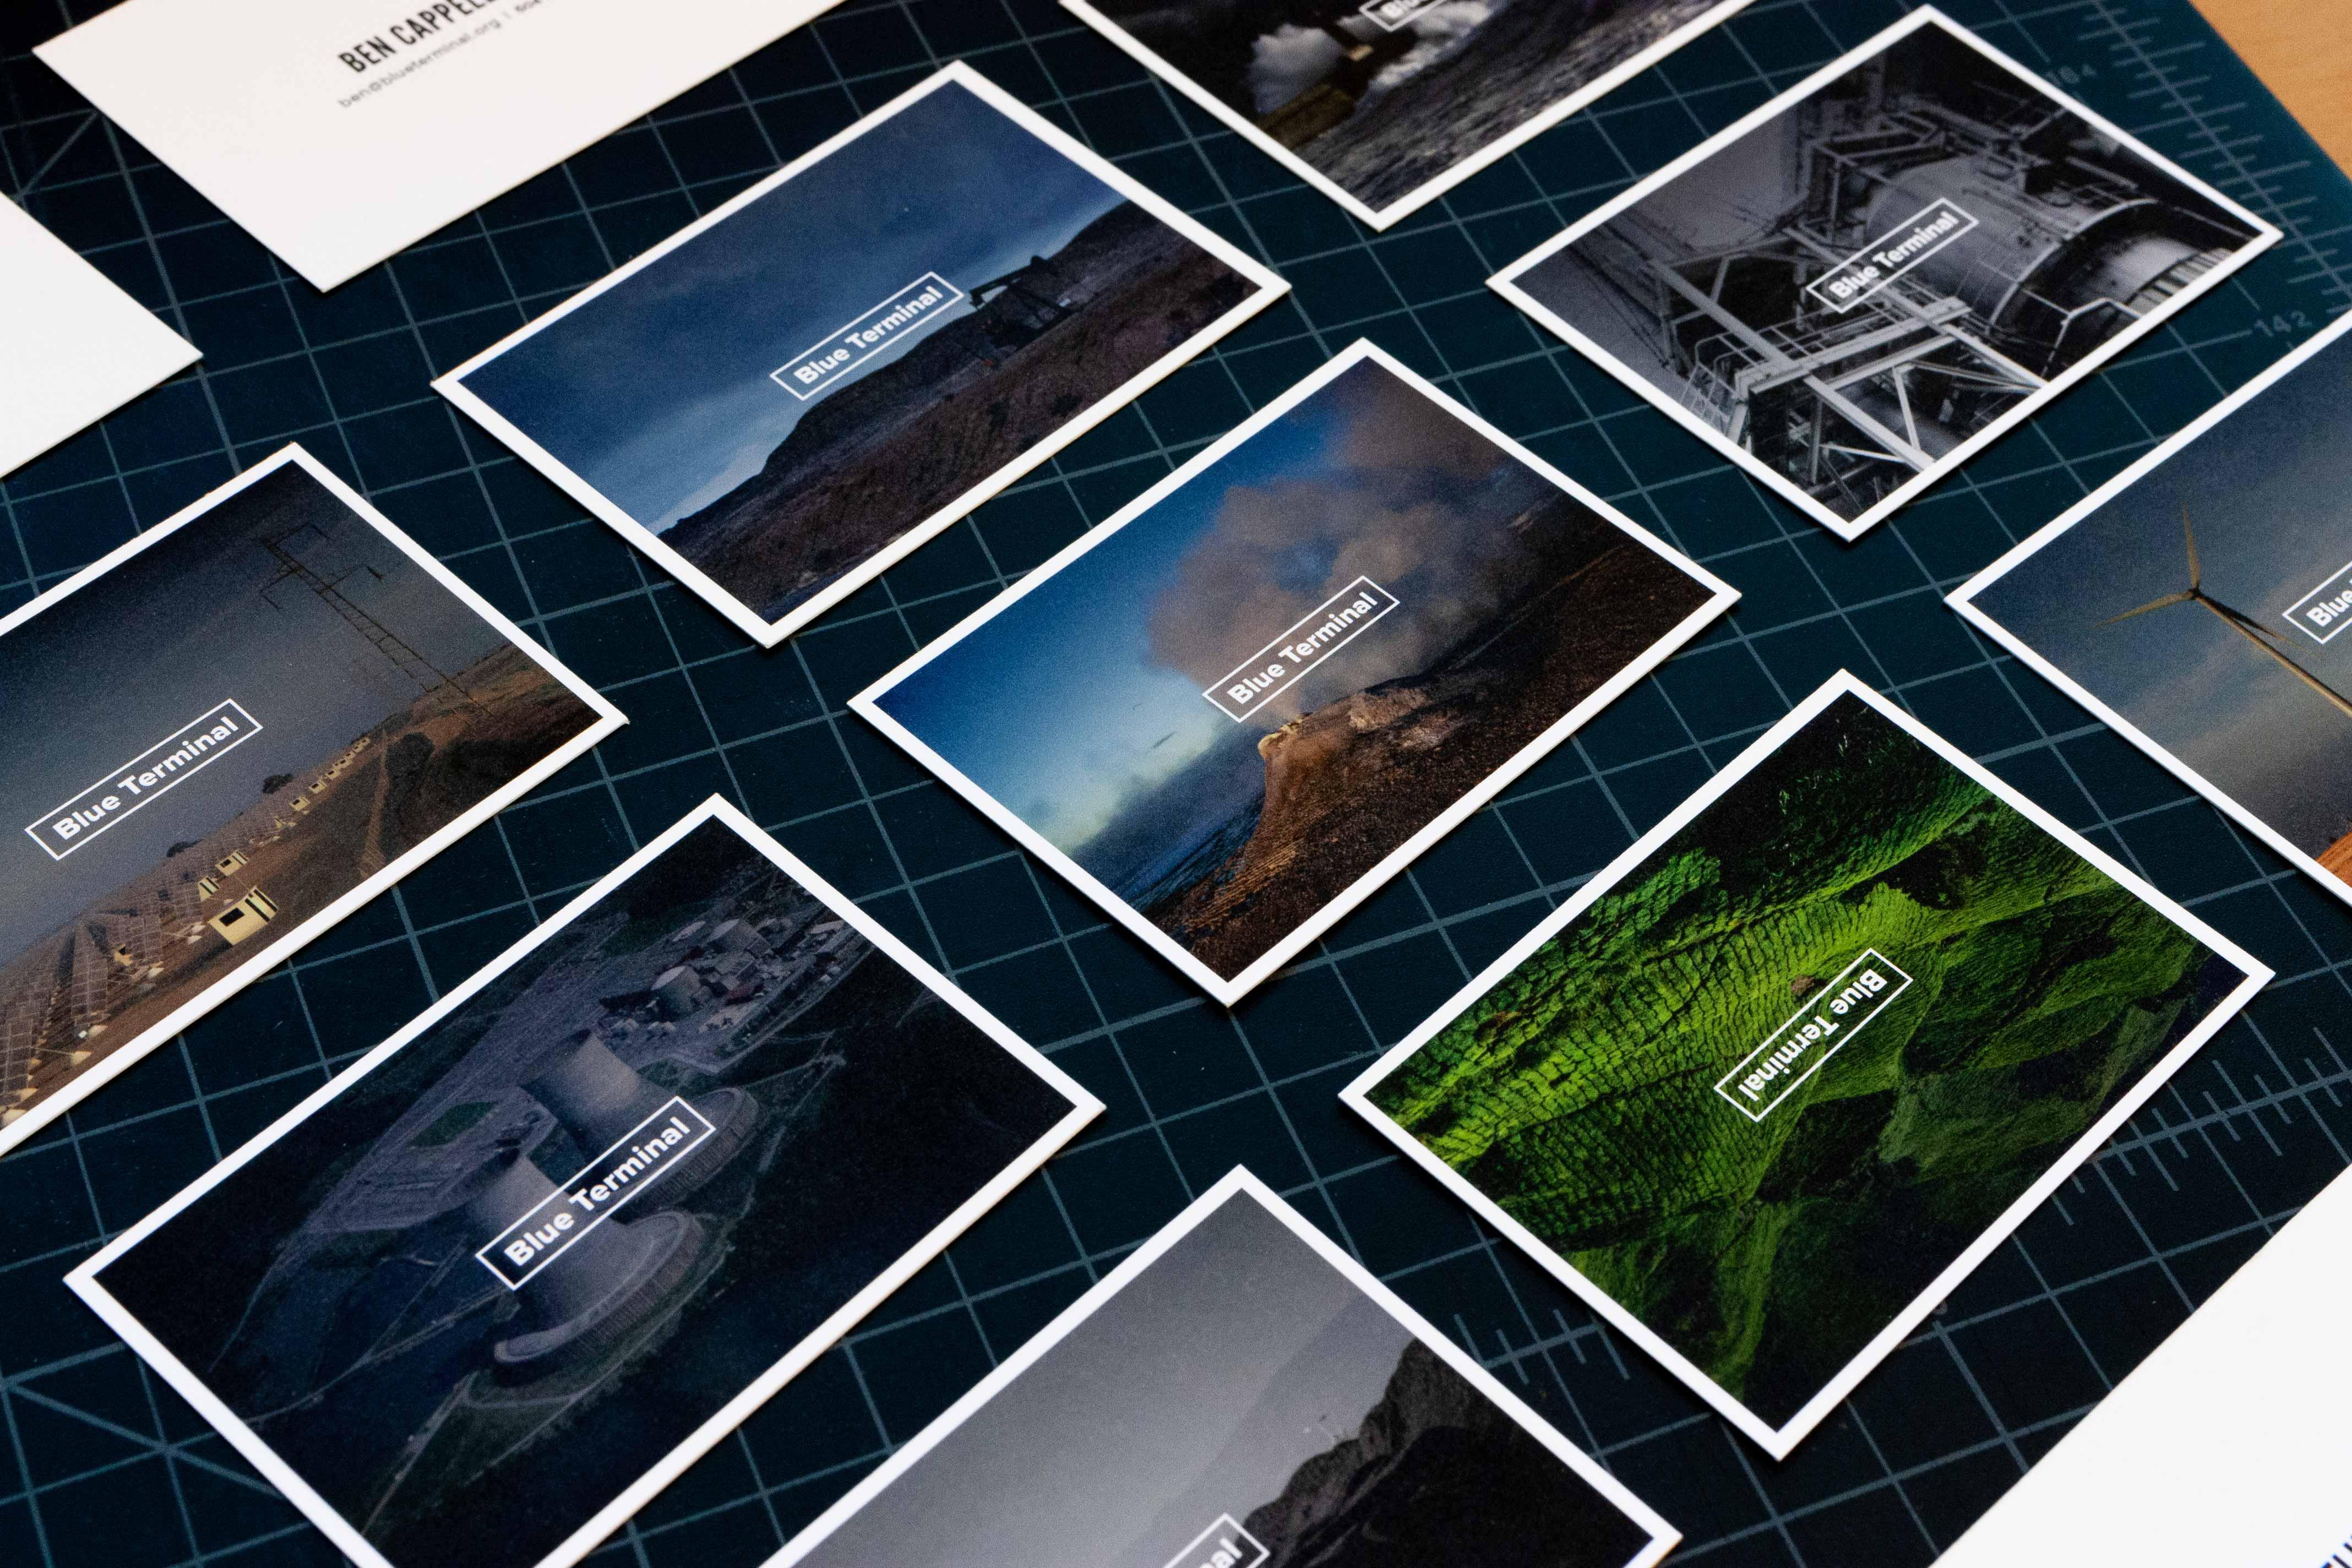 Blue Terminal business cards featuring various images of energy related scenes including oil refining, nuclear power, solar farms, wind farms and geothermal — by Yagnyuk.